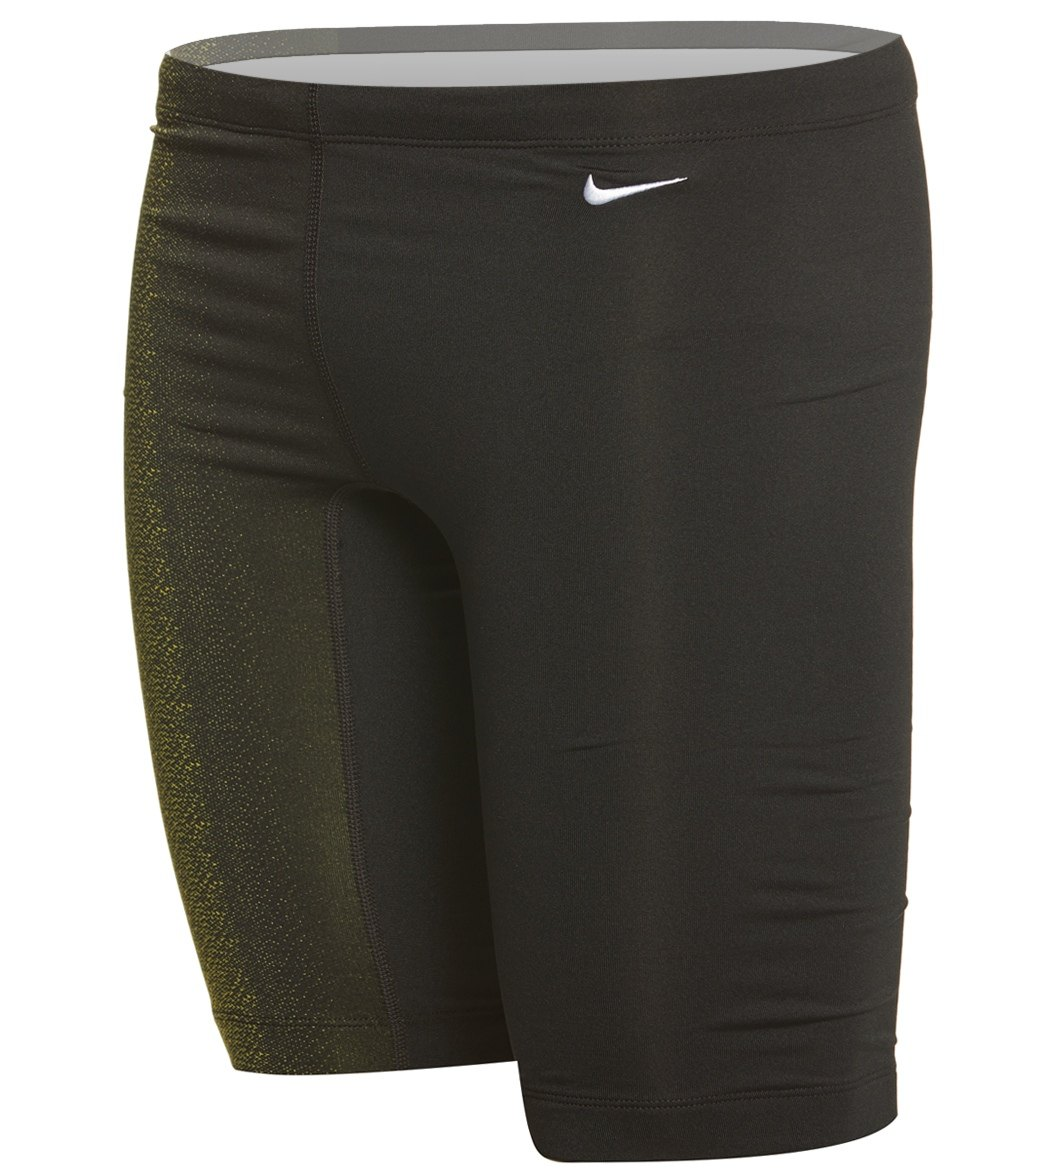 3e6954a81c5 Nike Men's Fade Sting Jammer Swimsuit at SwimOutlet.com - Free Shipping